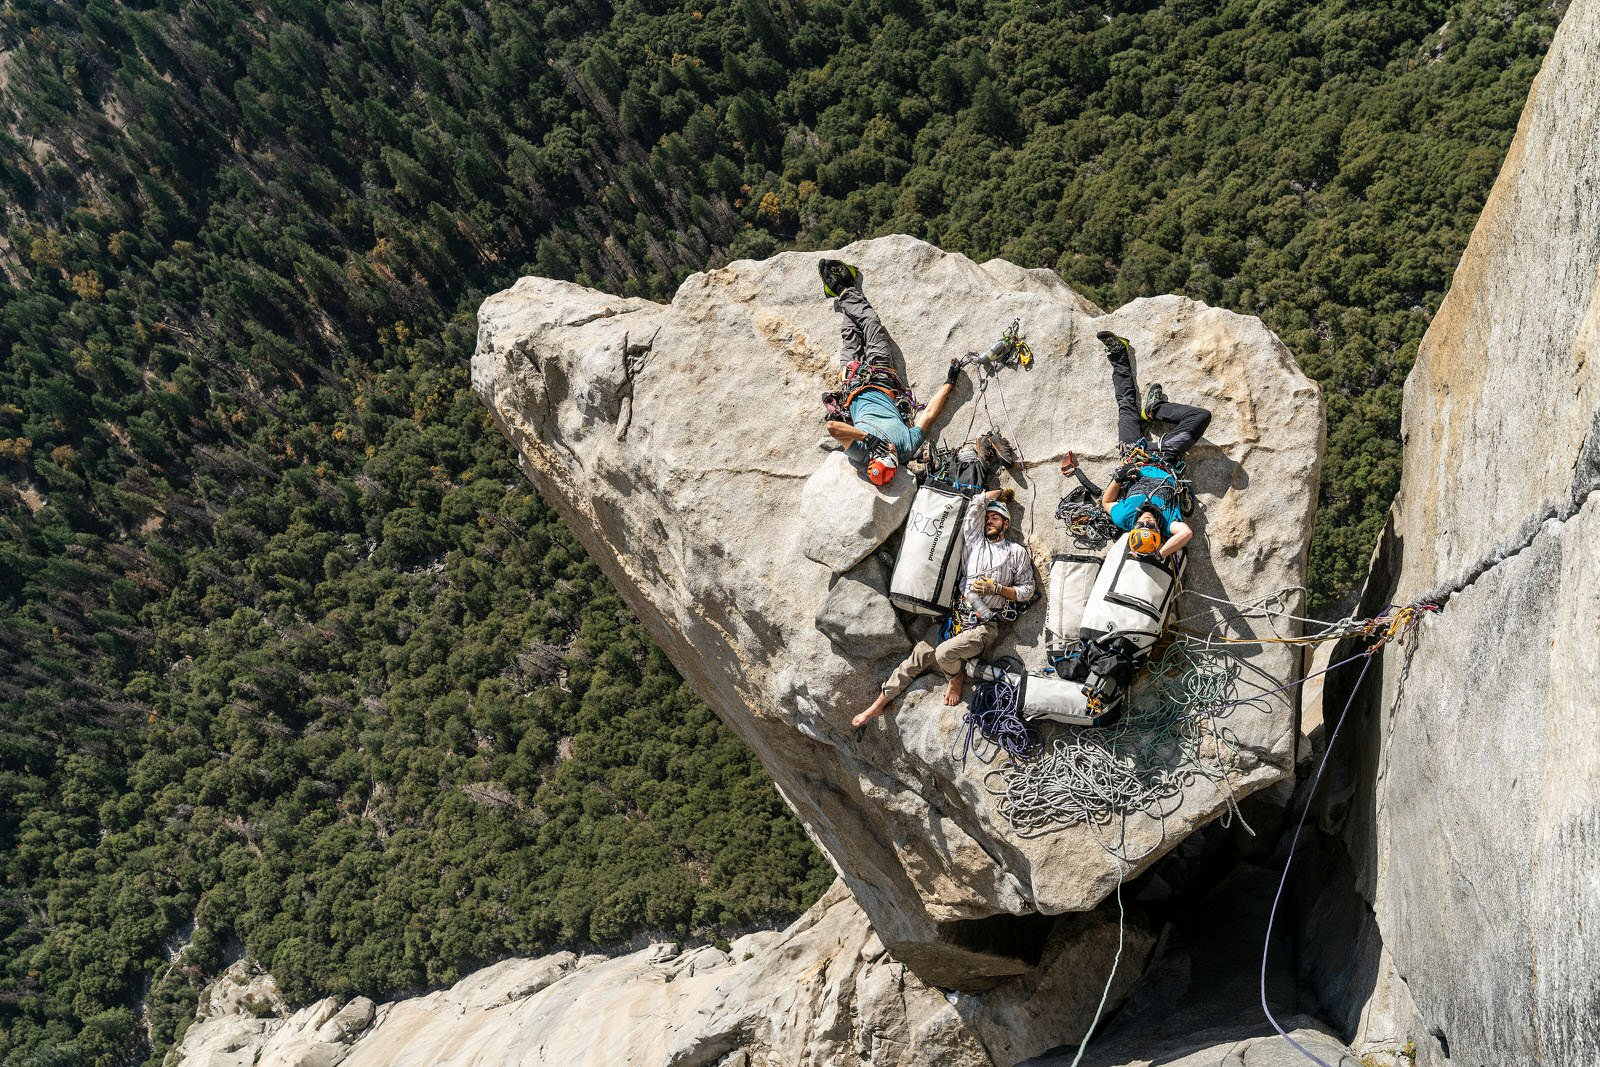 Lifestyle: Alexander Wick, Germany, for his tribute shot of Philipp Bankosegger, Chris Rudolph and Luke Lalor taking a nap by Salathé Wall, El Capitan, Yosemite National Park, USA.